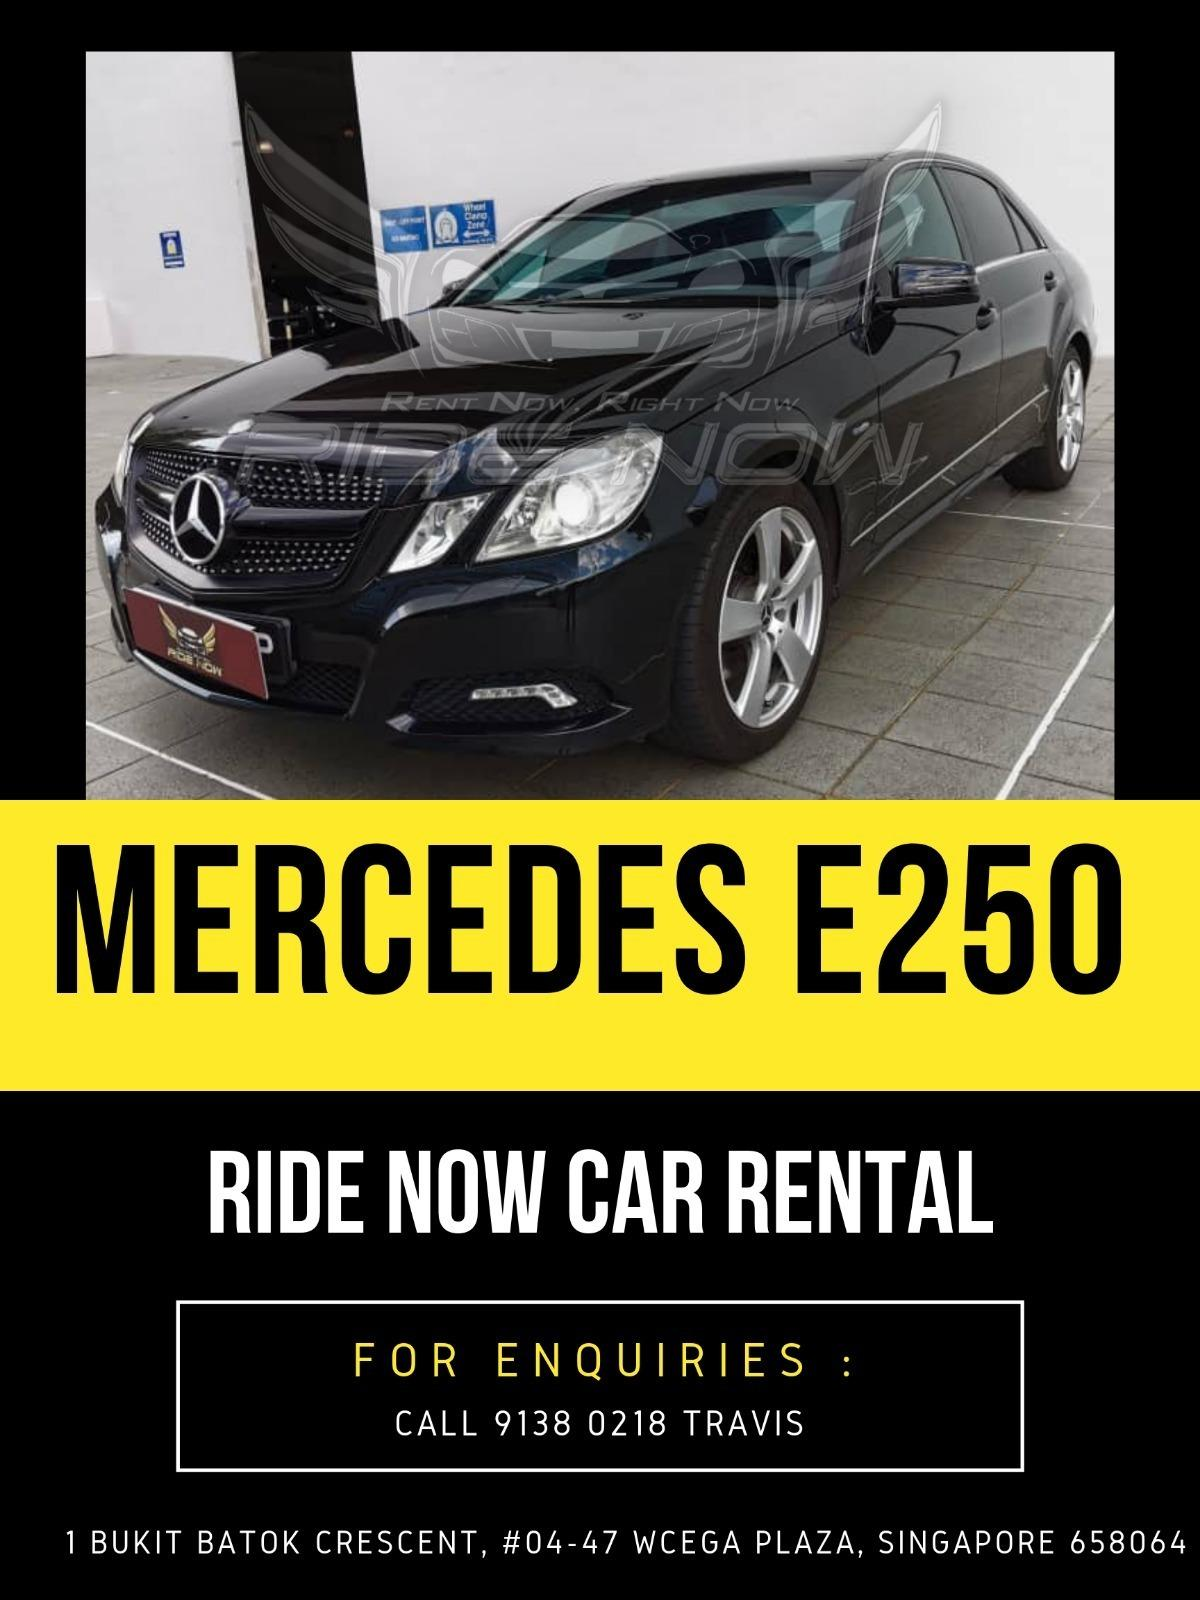 Mercedes E250 CGI Shiny Shimmering Black Classy Luxury Vehicle for Rent!